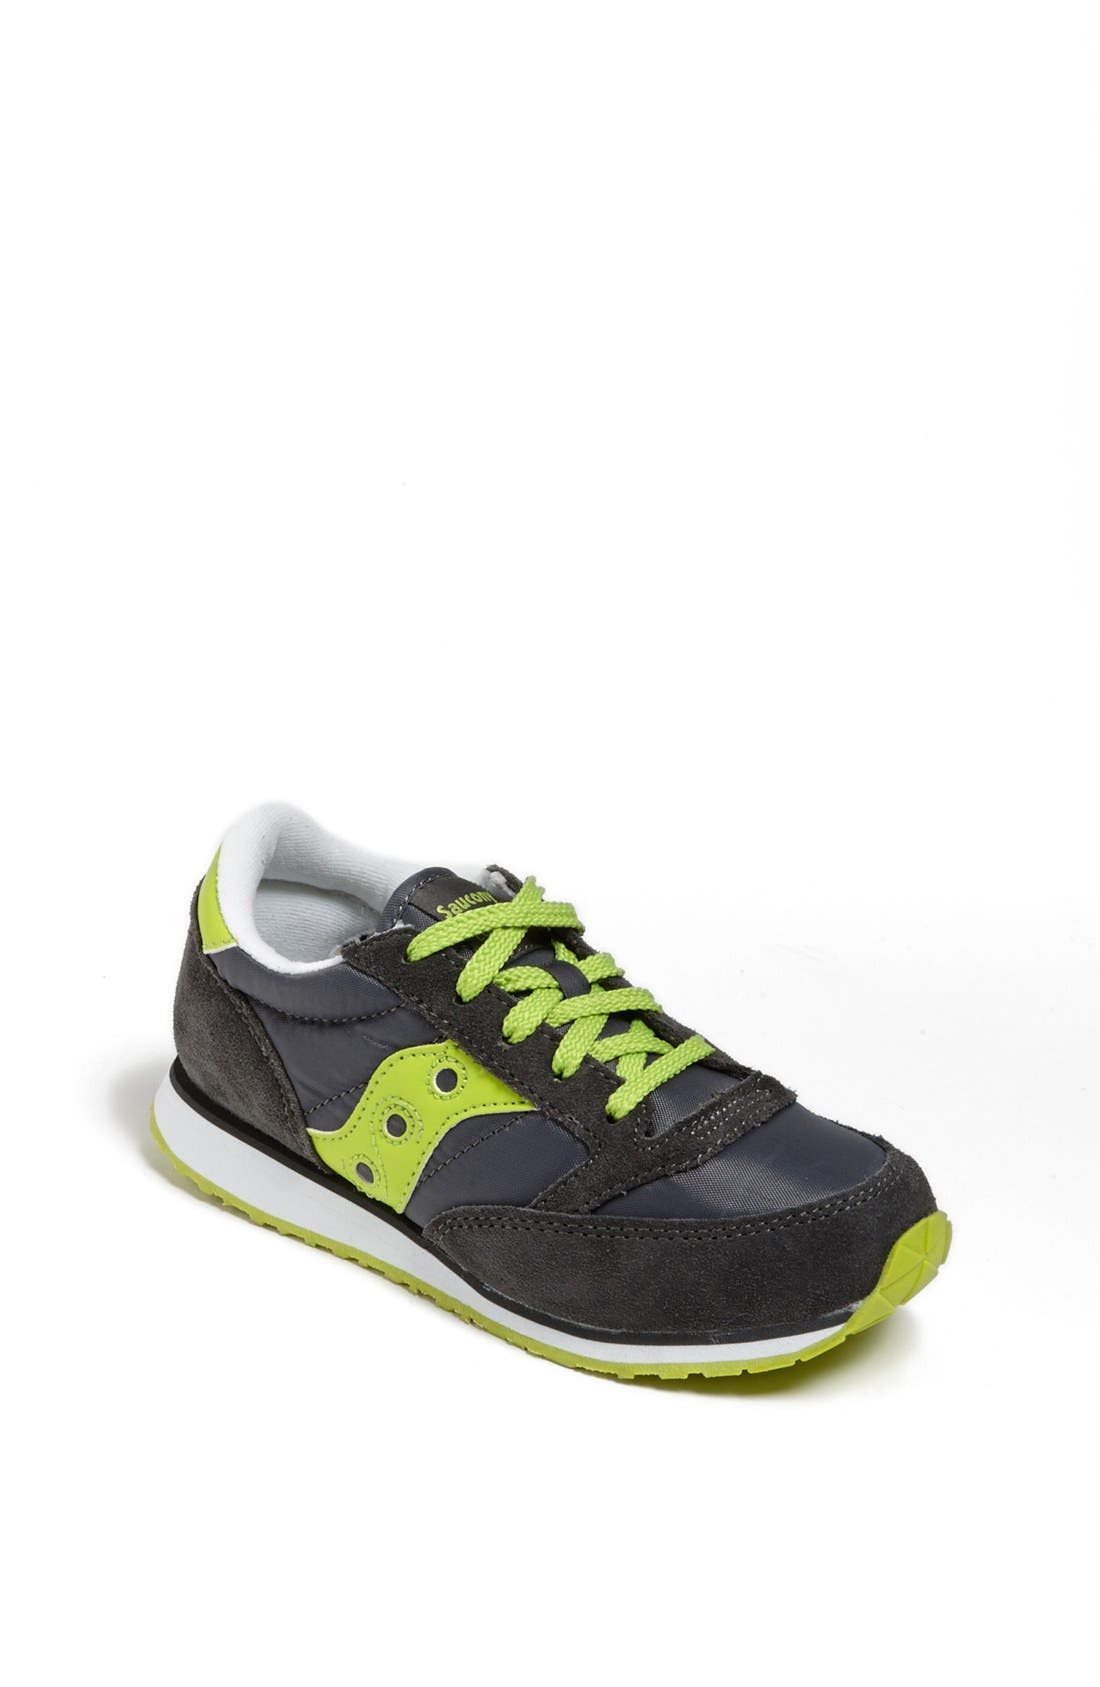 Main Image - Saucony 'Jazz - LowPro' Sneaker (Toddler & Little Kid)